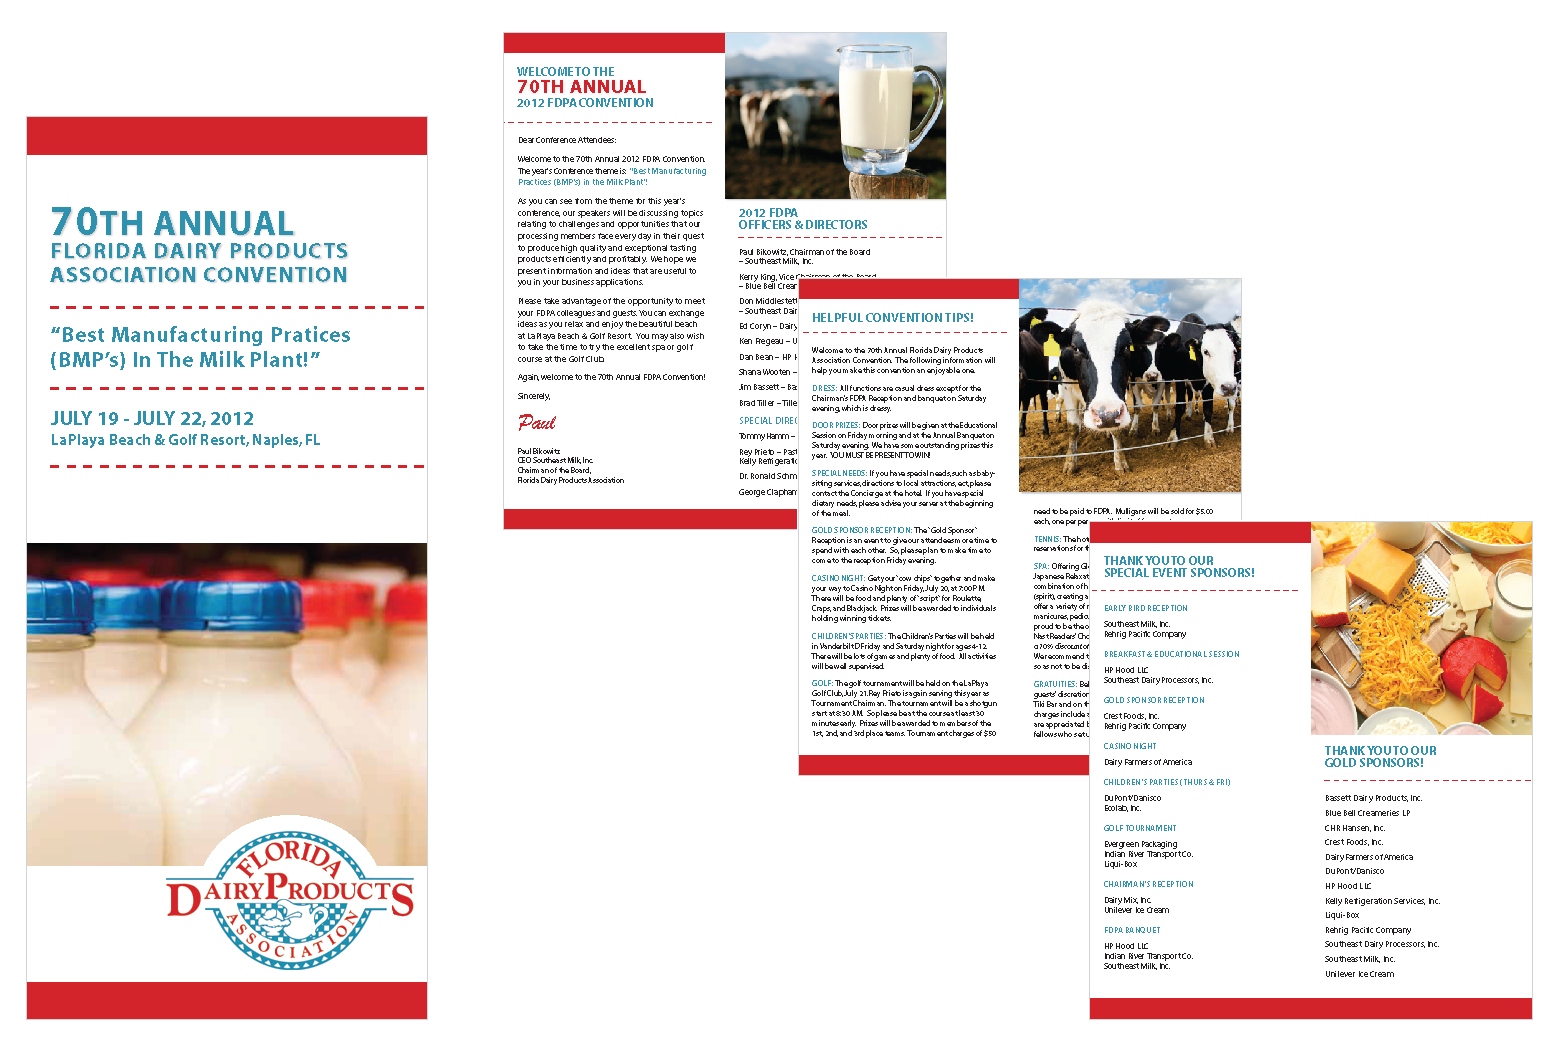 florida dairy products association convention brochure